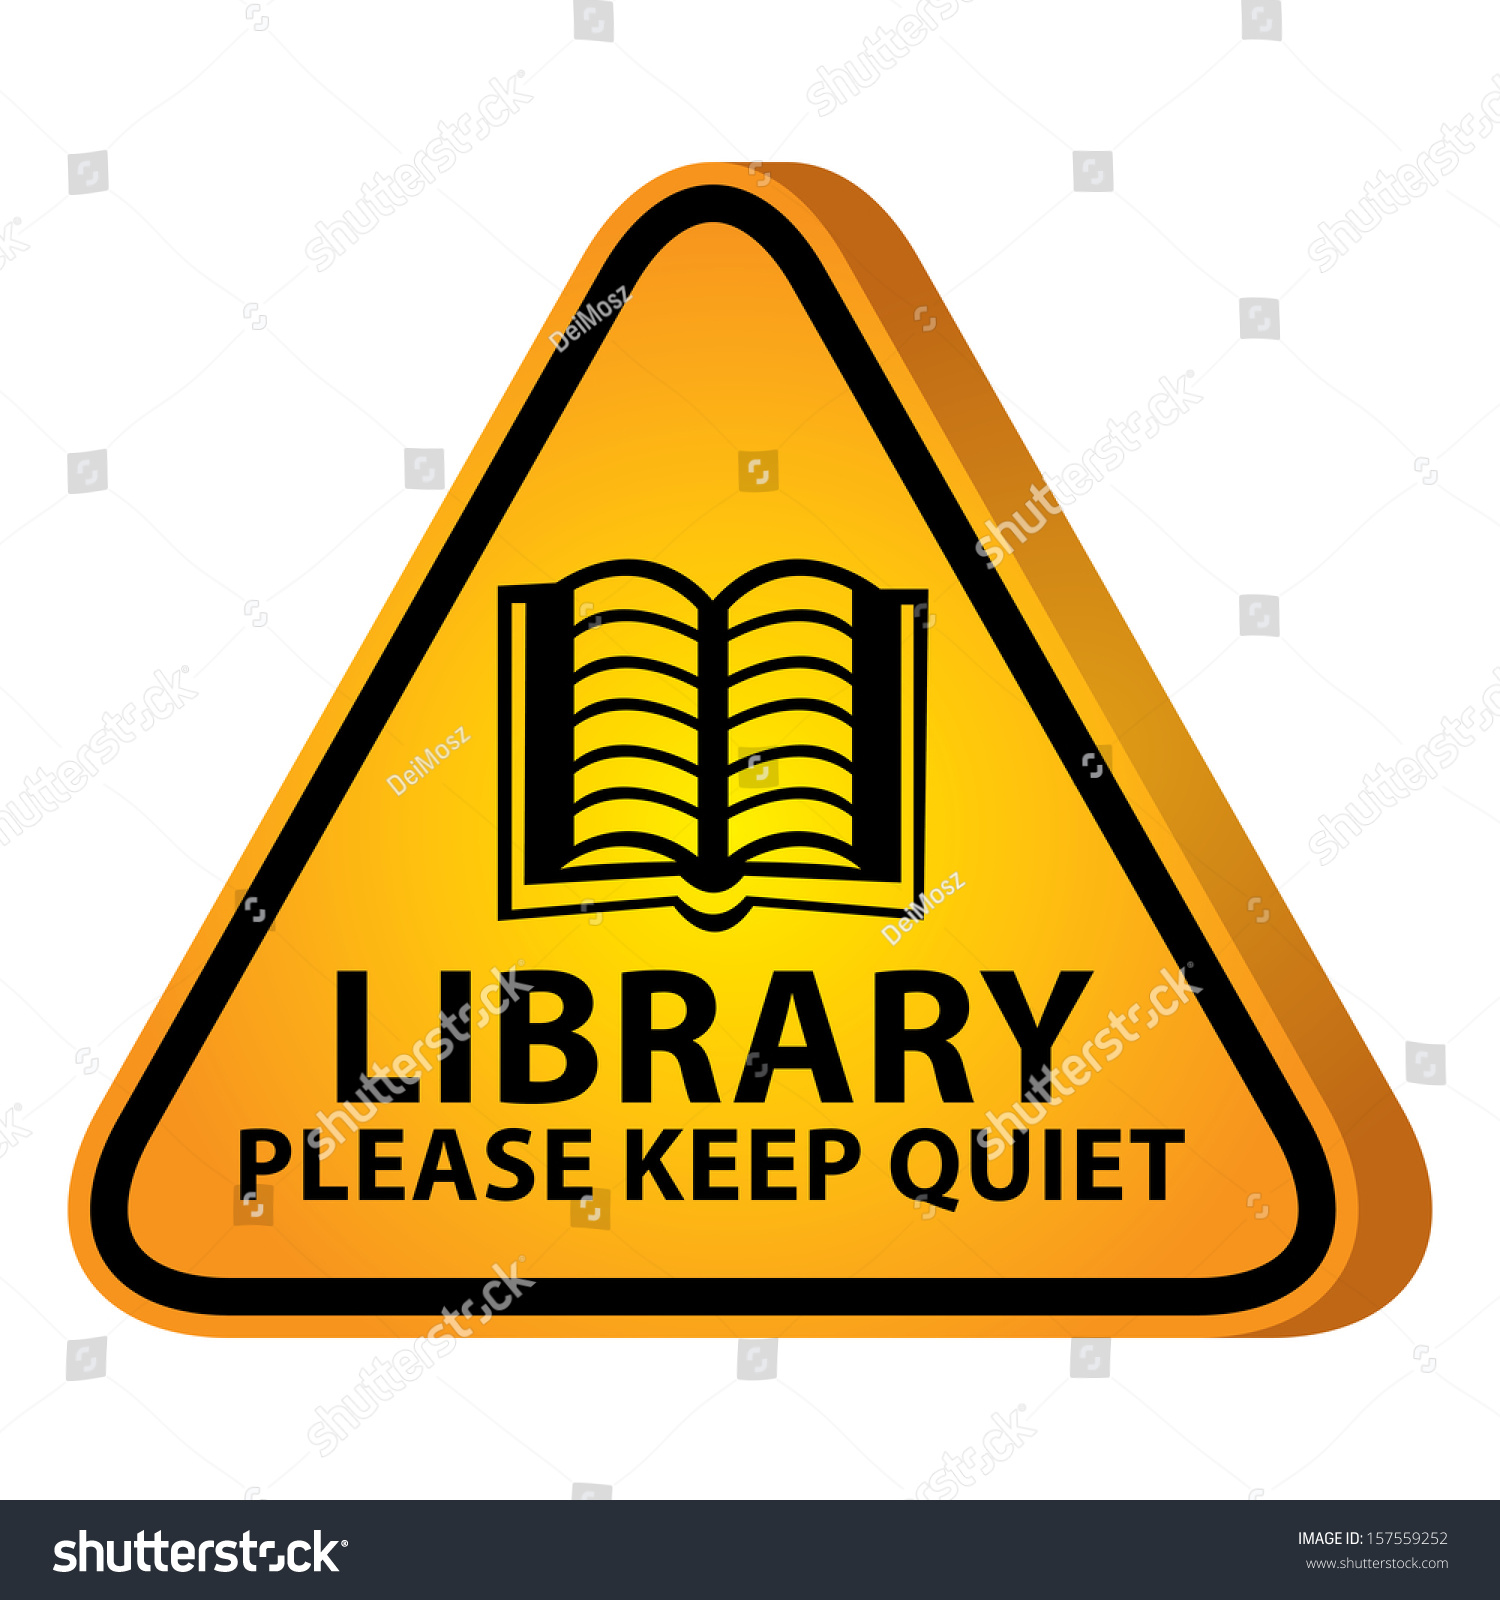 Keep Quiet Pictures Stock Photo D Yellow Glossy Style Triangle Caution